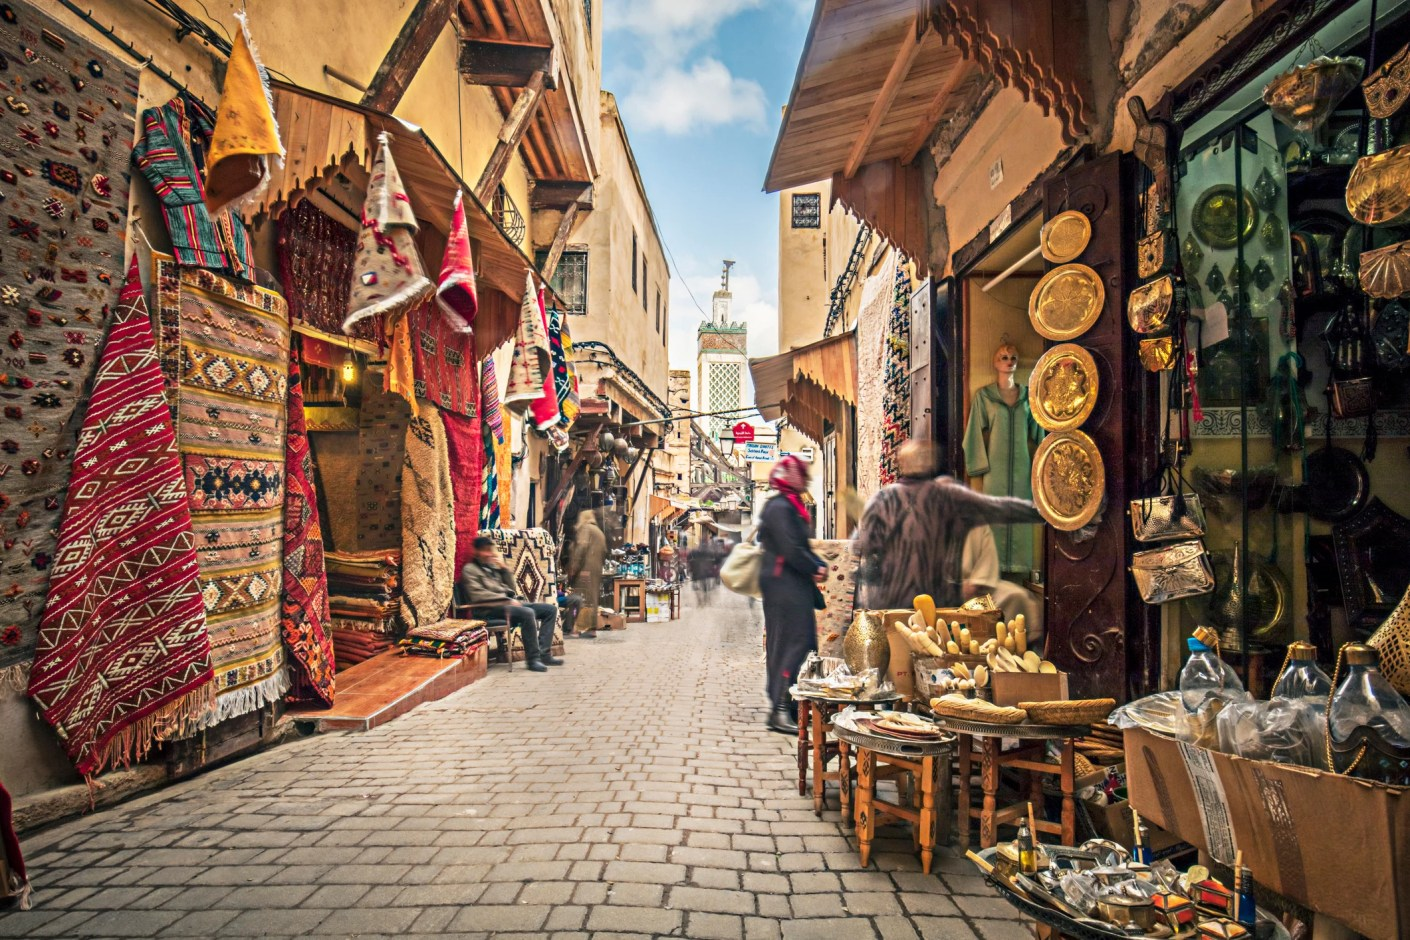 Staying in the medina means quicker access to the souks. Image courtesy of xavierarnau via Getty Images.